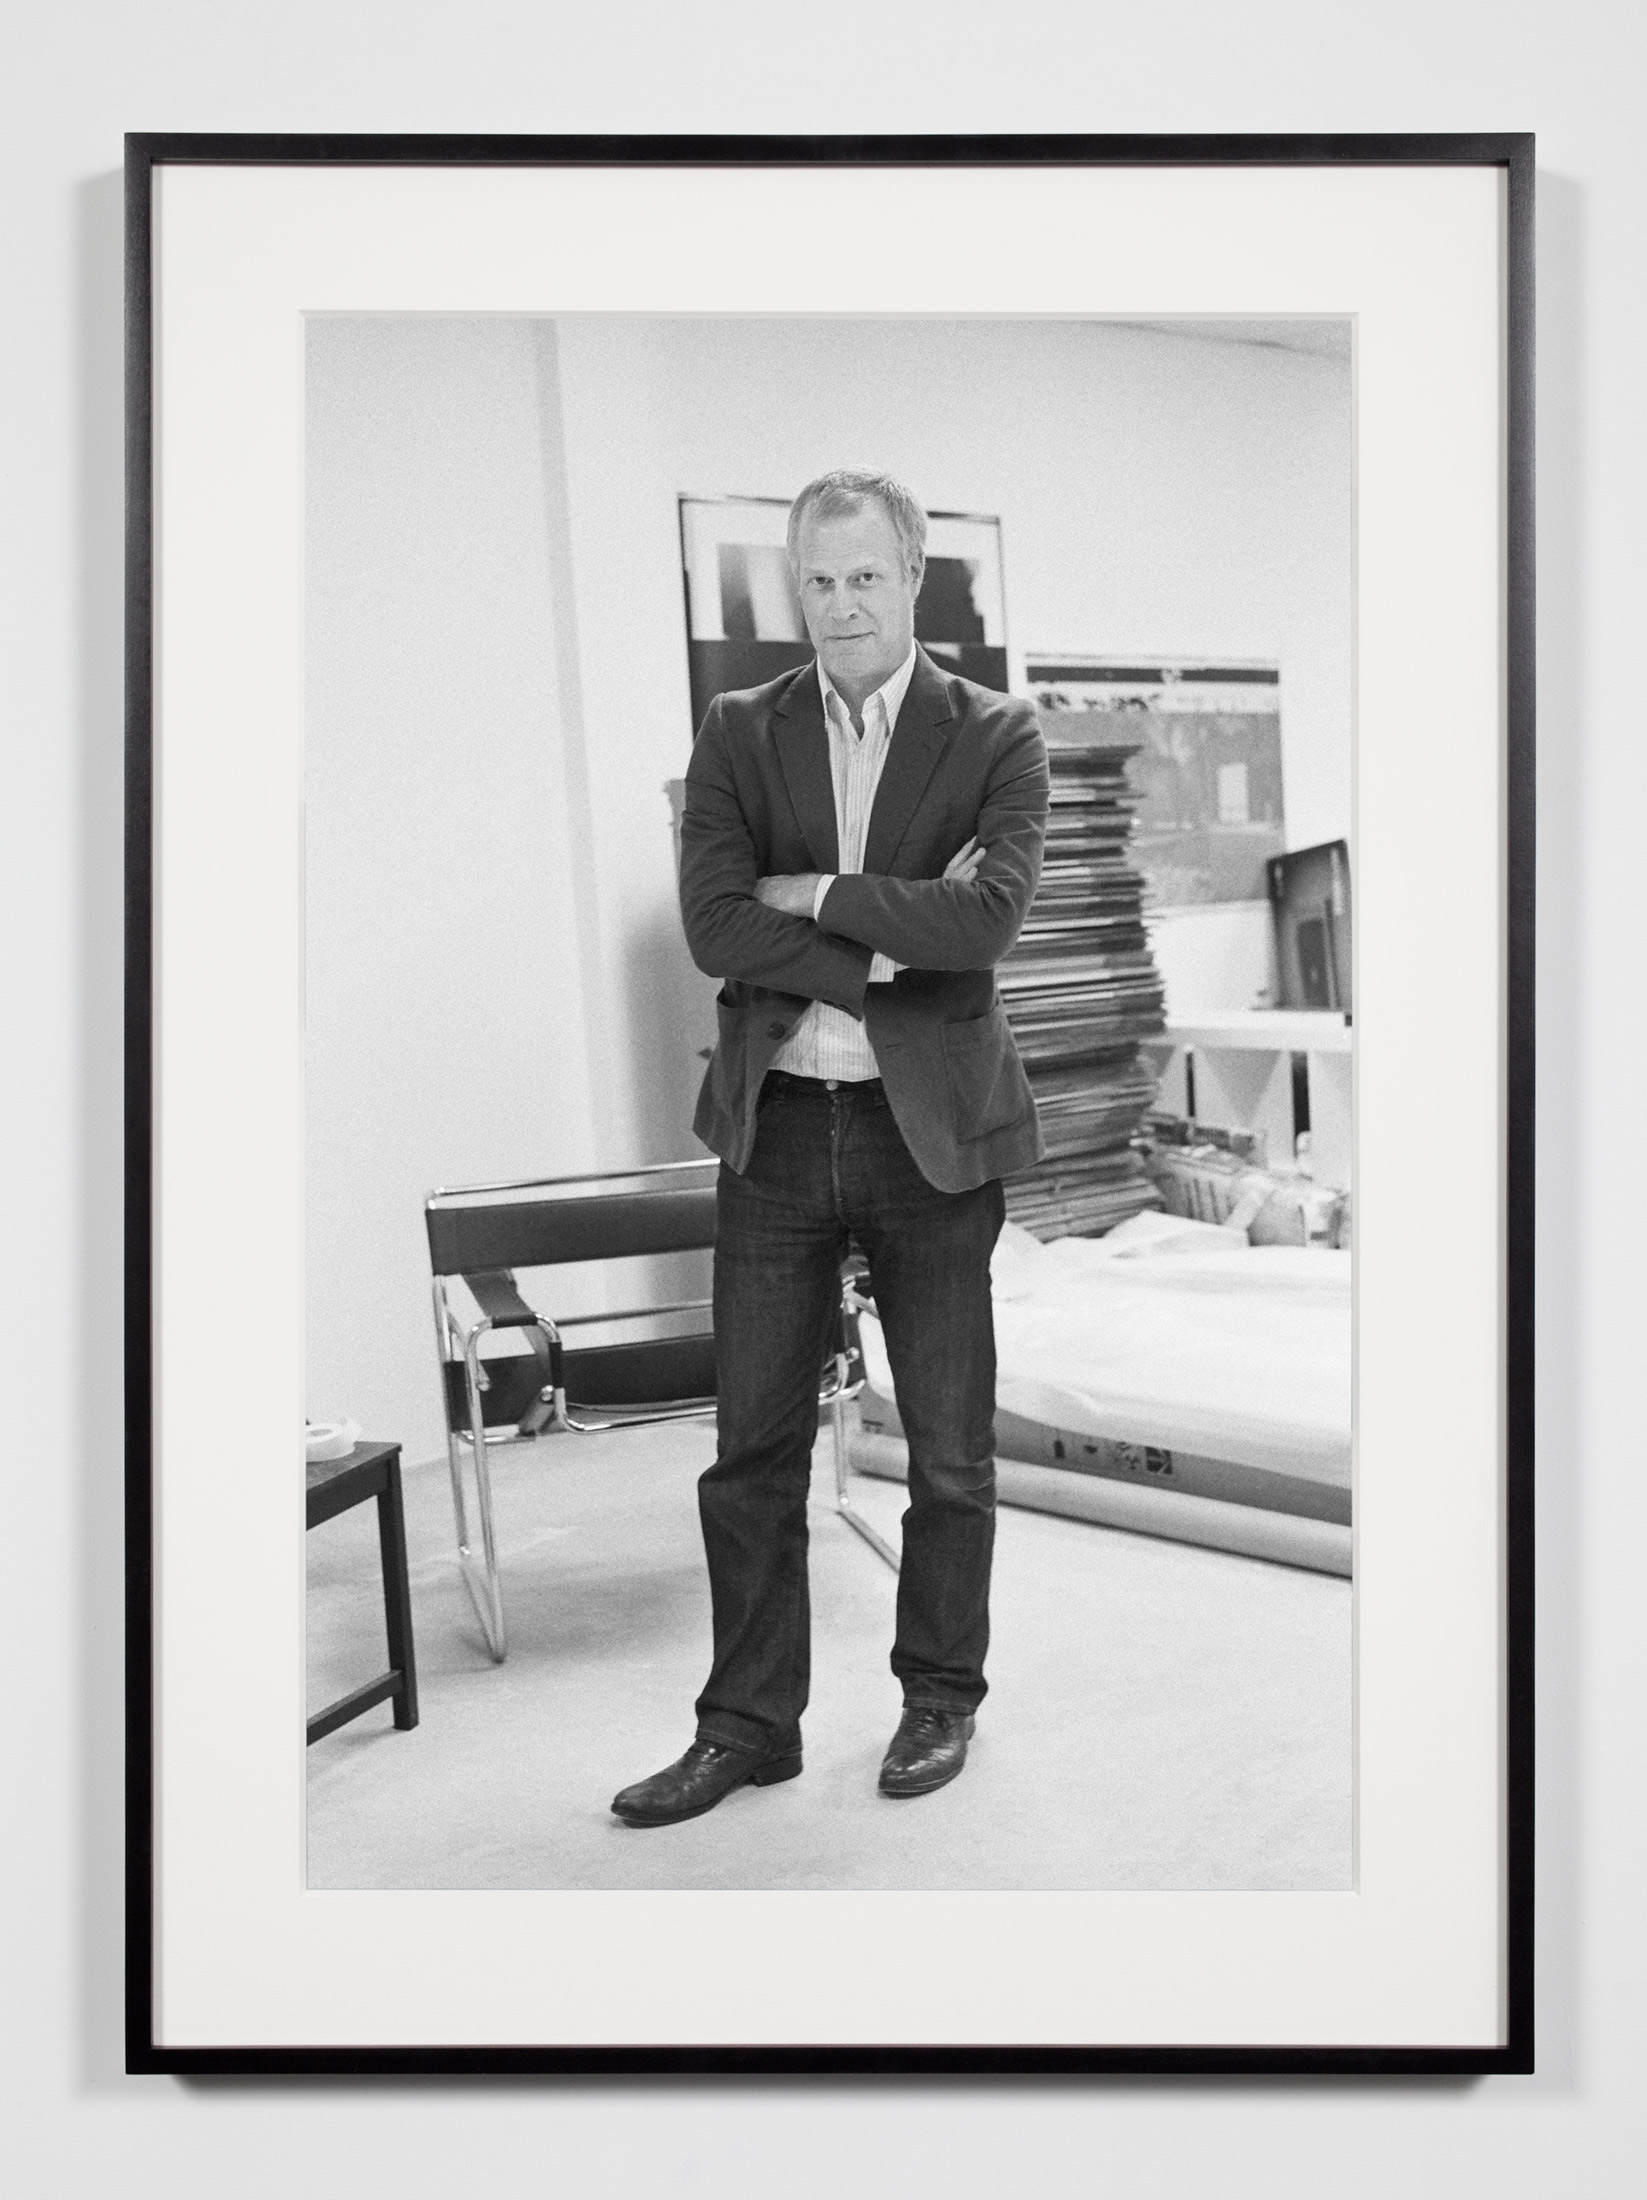 Art Fair Director (DH), Los Angeles, California, July 20, 2008    2008   Epson Ultrachrome K3 archival ink jet print on Hahnemühle Photo Rag paper  36 3/8 x 26 3/8 inches   Industrial Portraits, 2008–